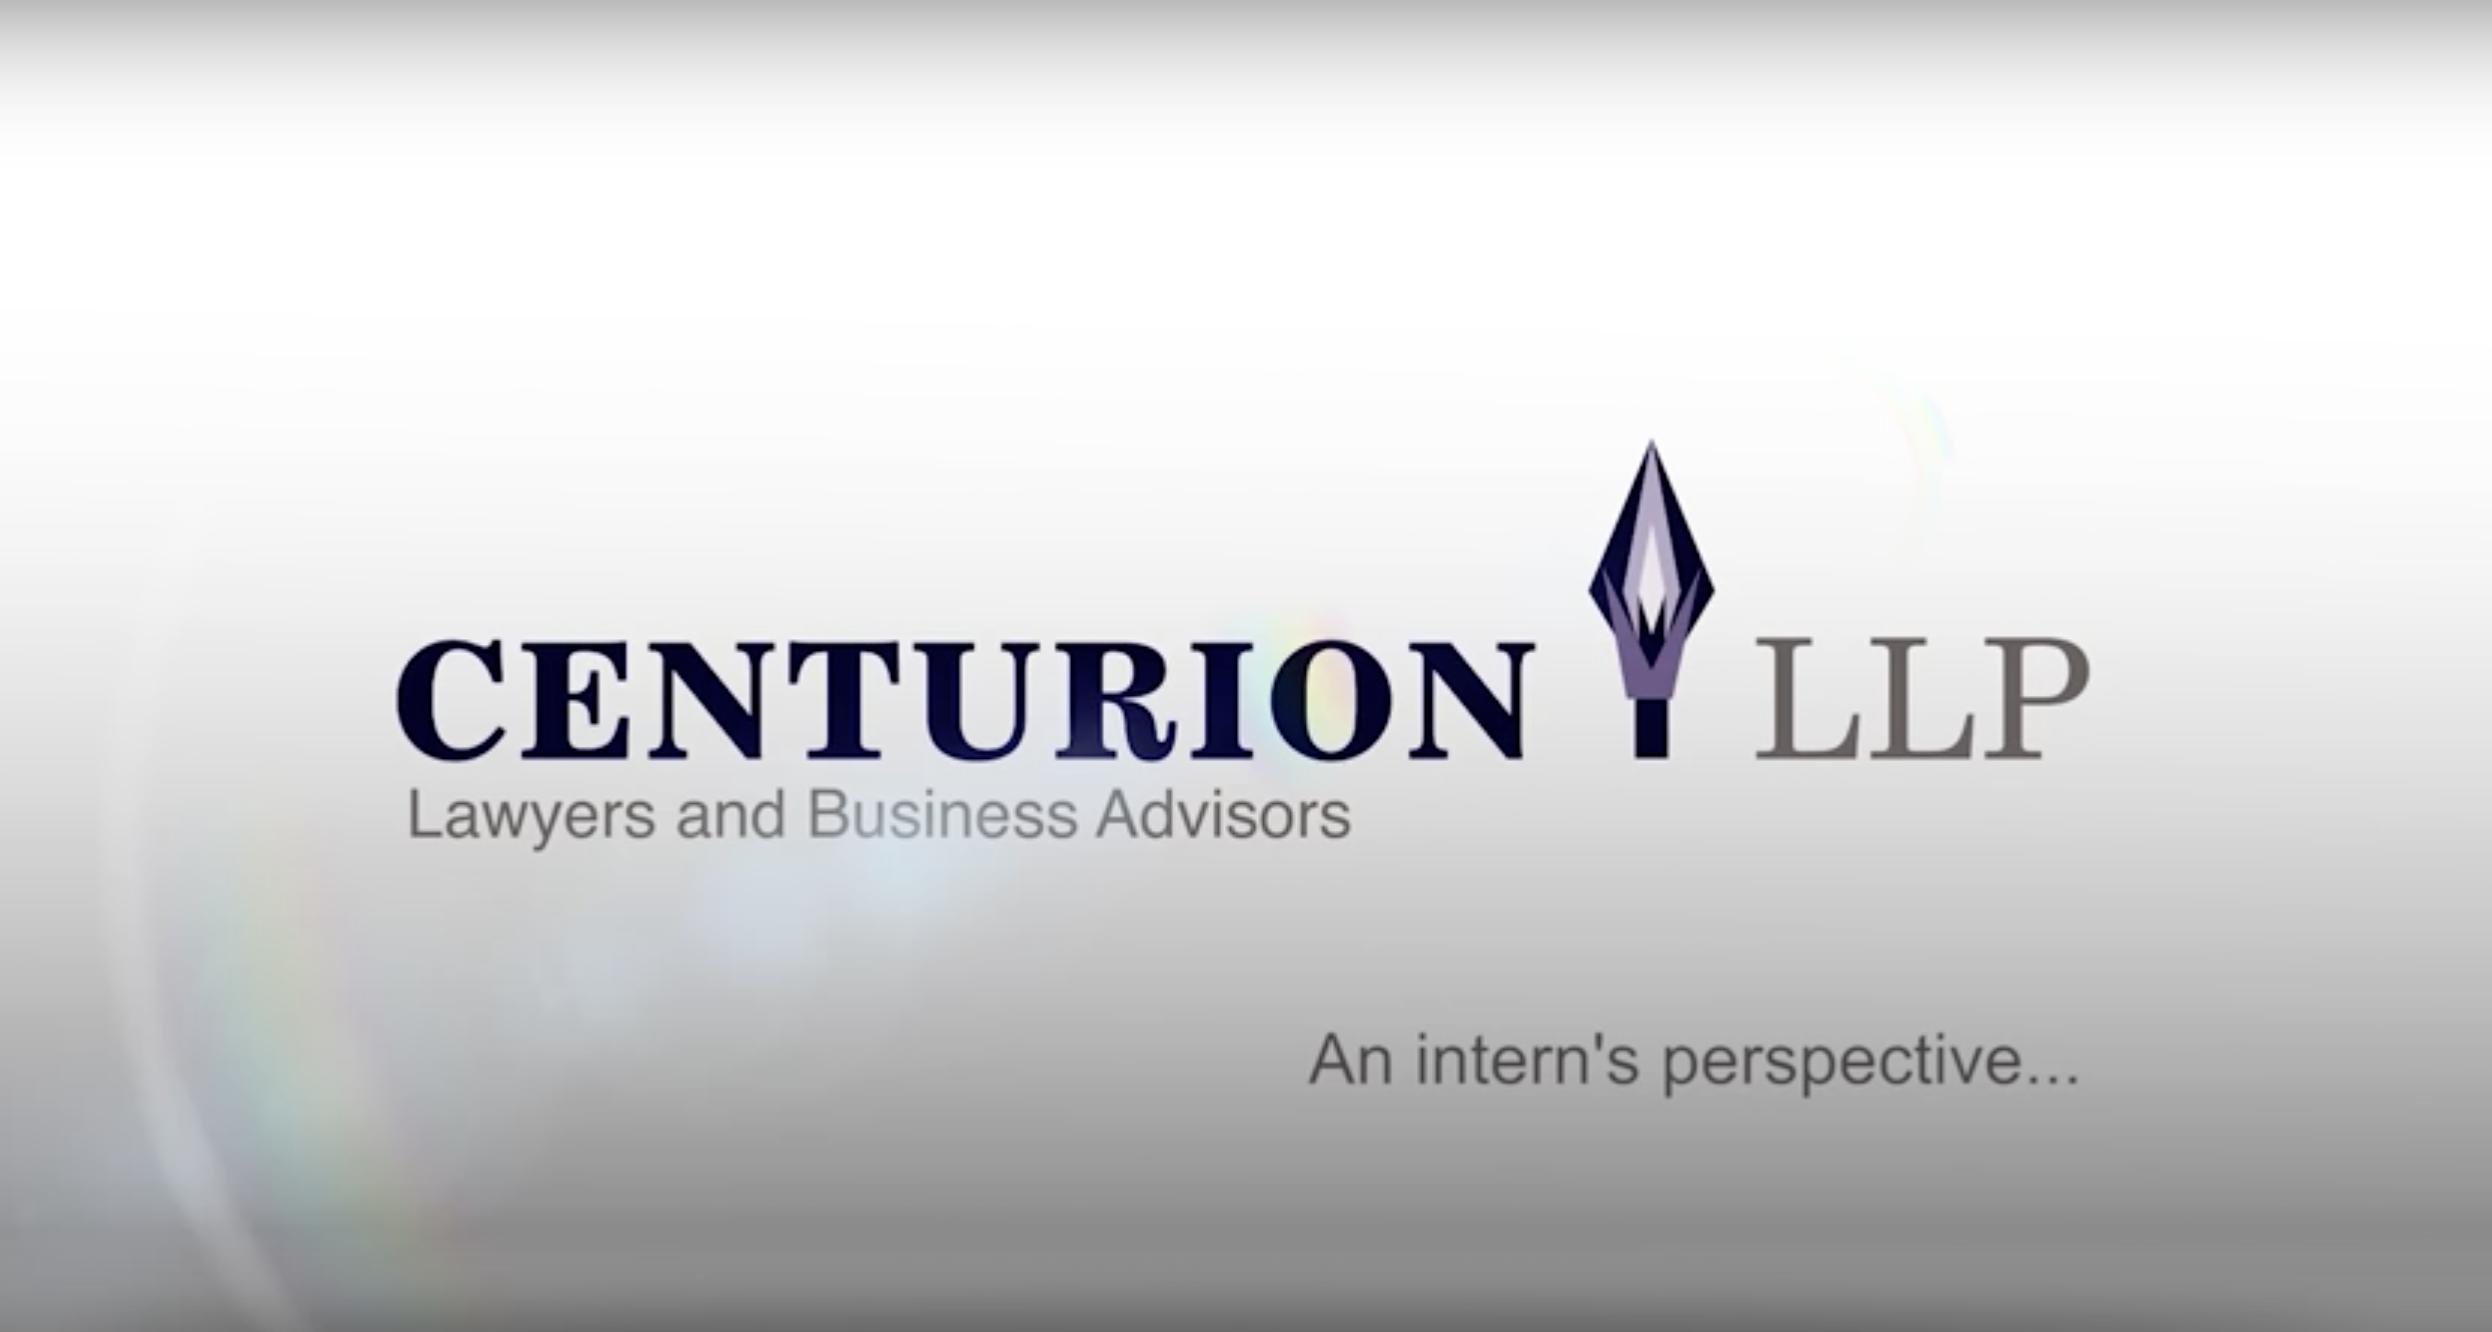 Centurion interns